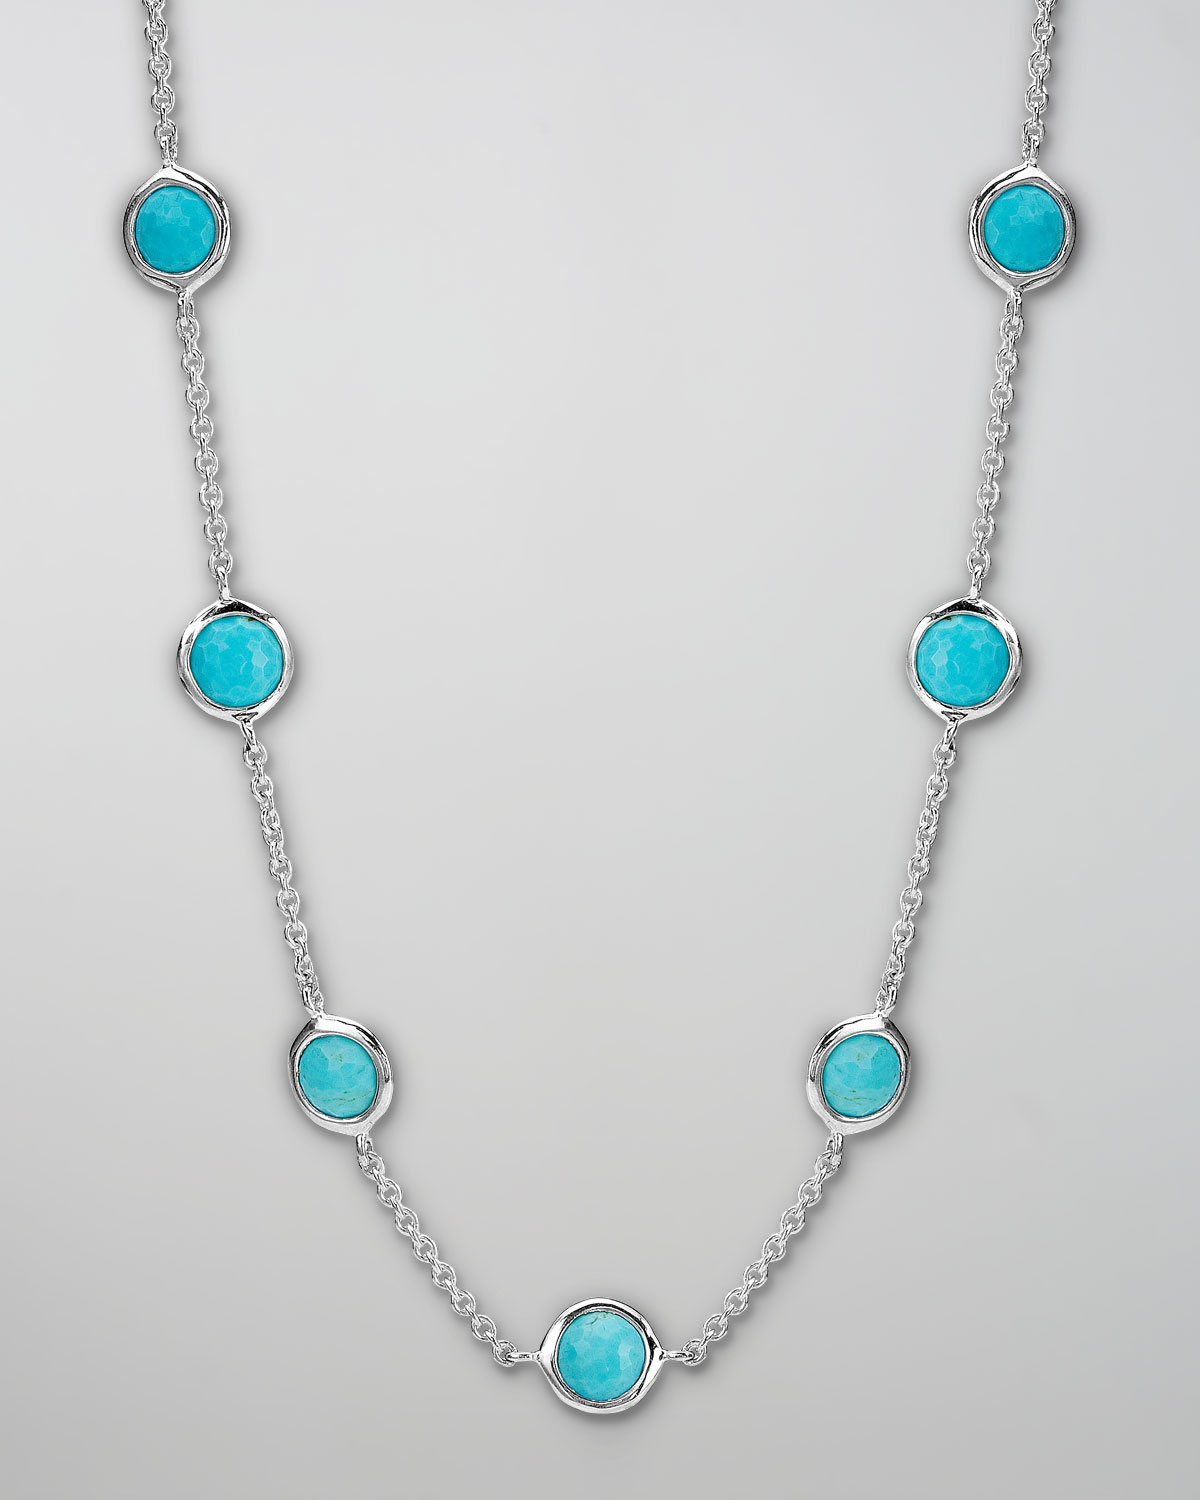 Lyst Ippolita Turquoise Station Necklace In Blue